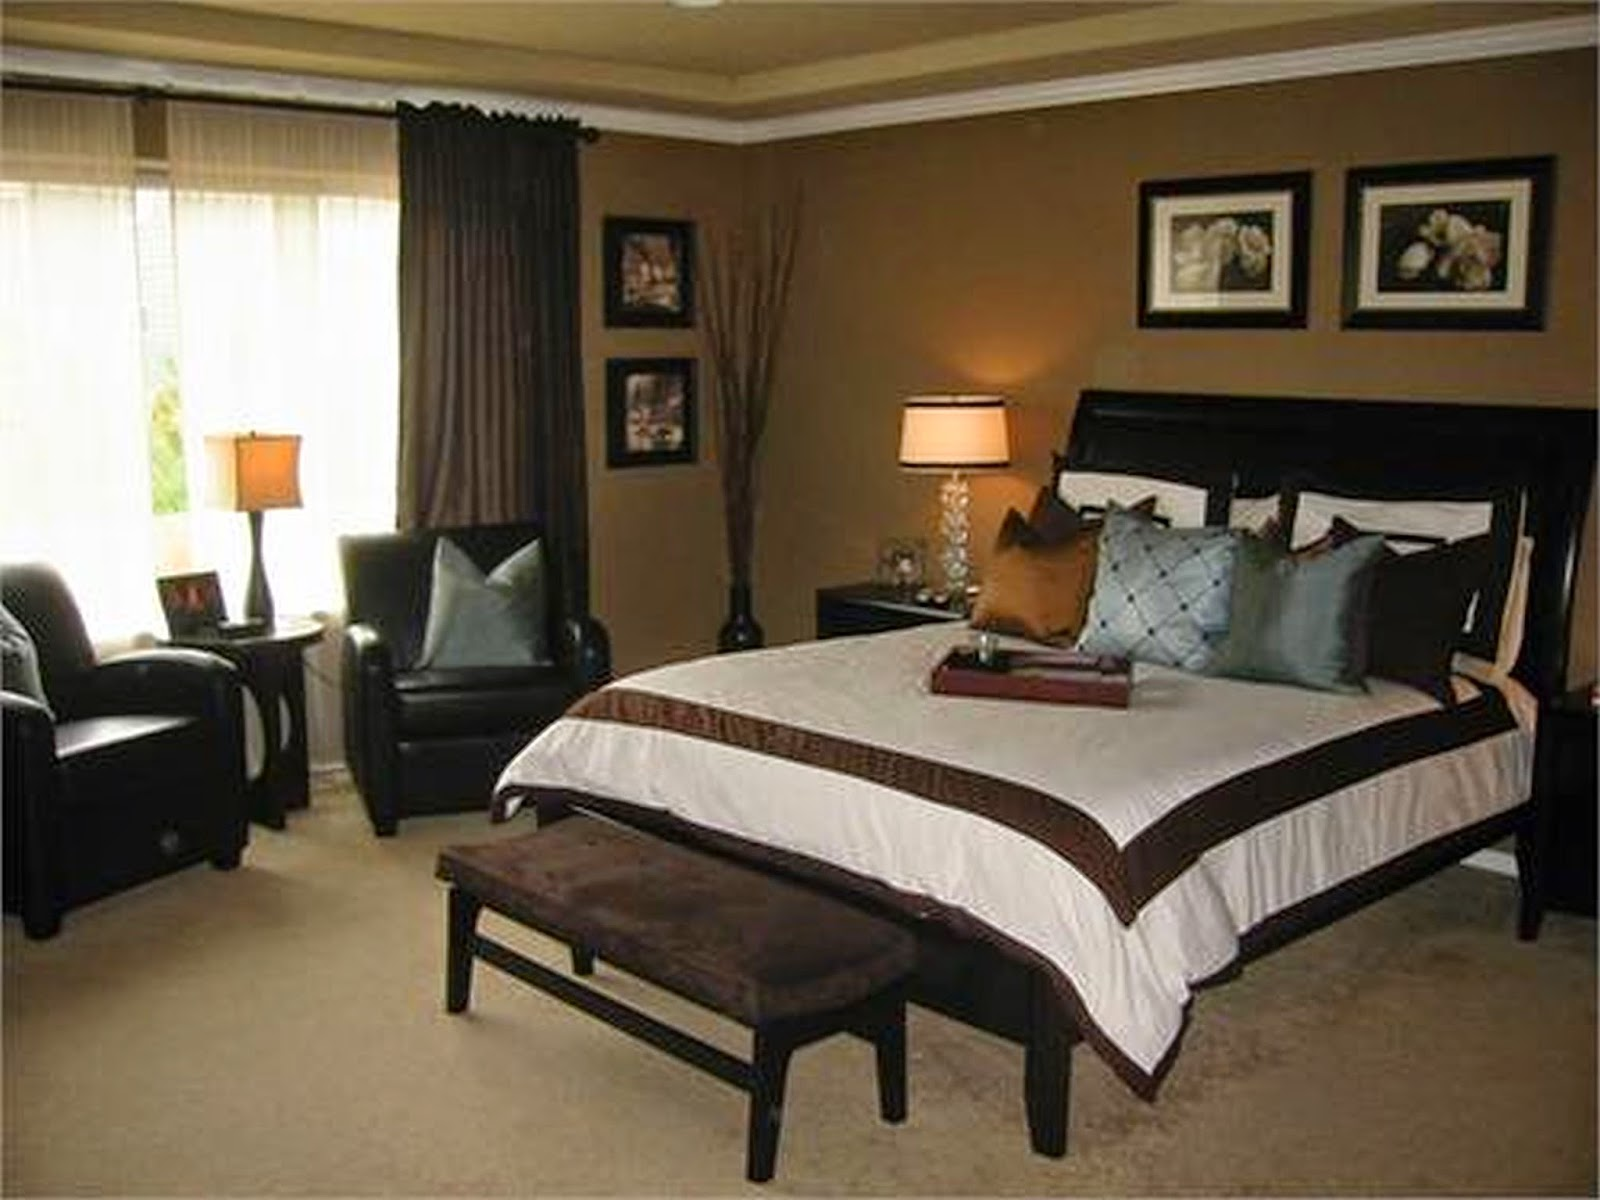 brown-curtains-design-better-choice-for-bedroom